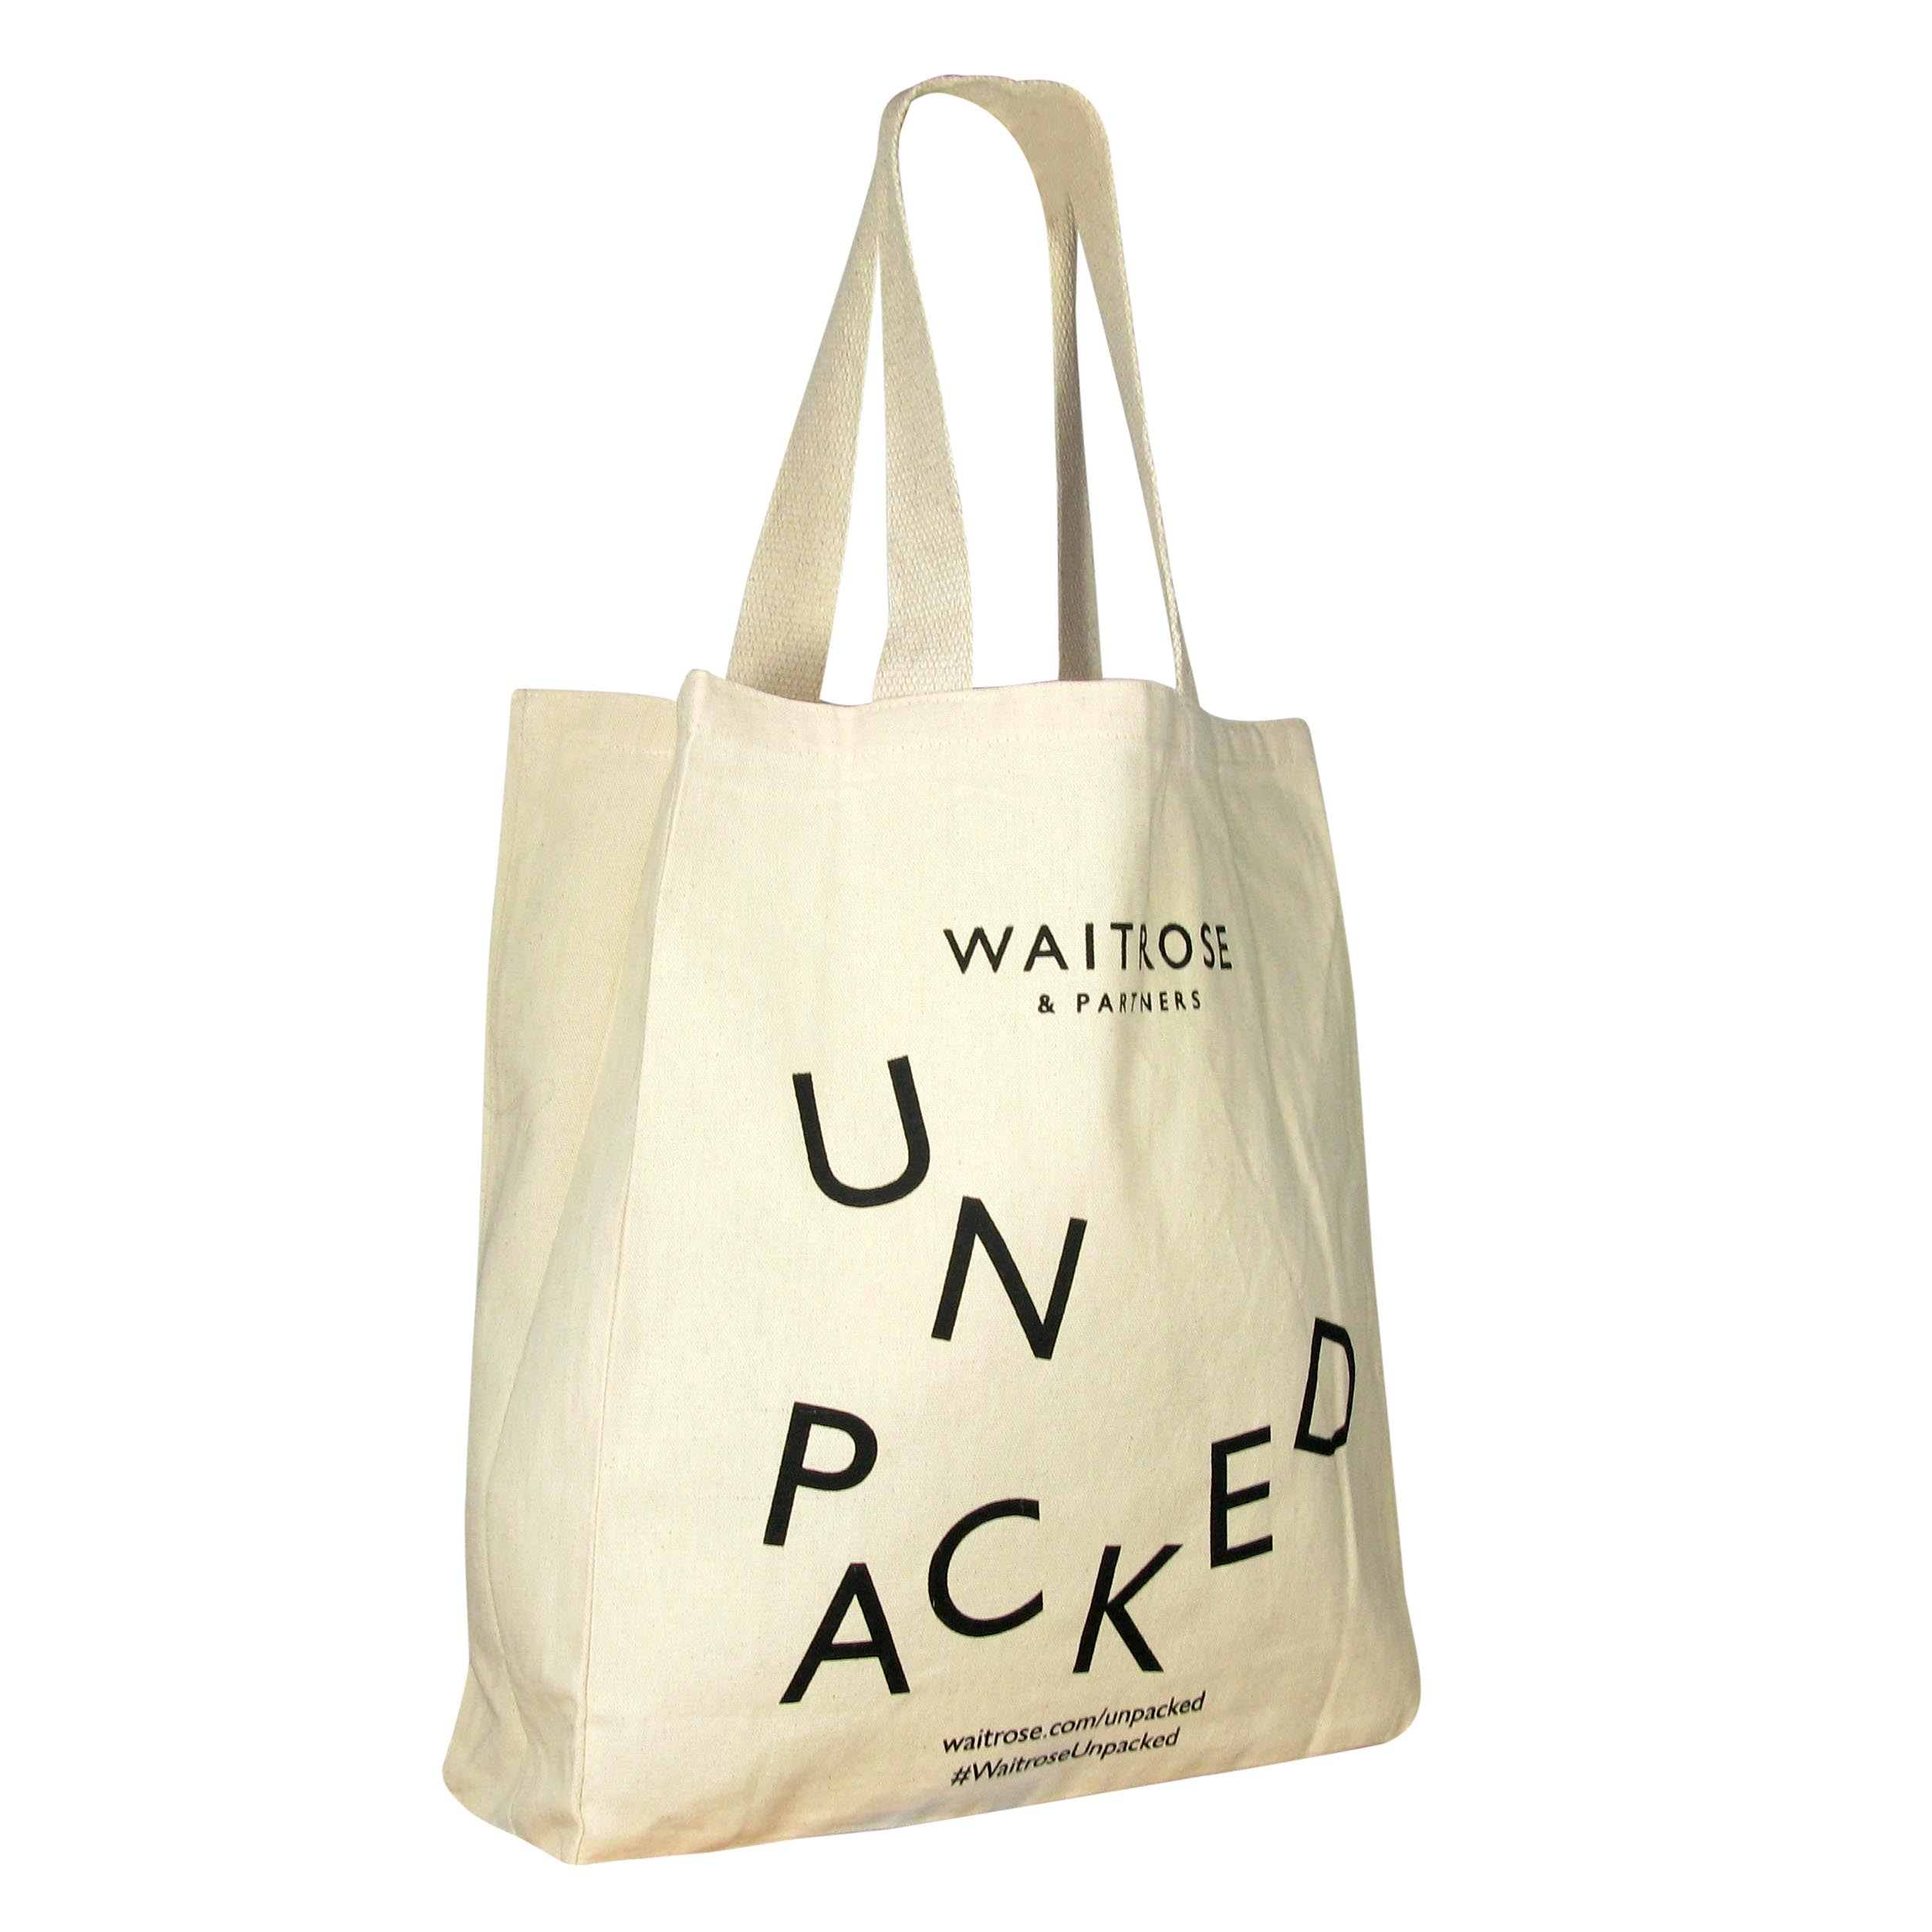 Waitrose Unpacked Cotton Shopper